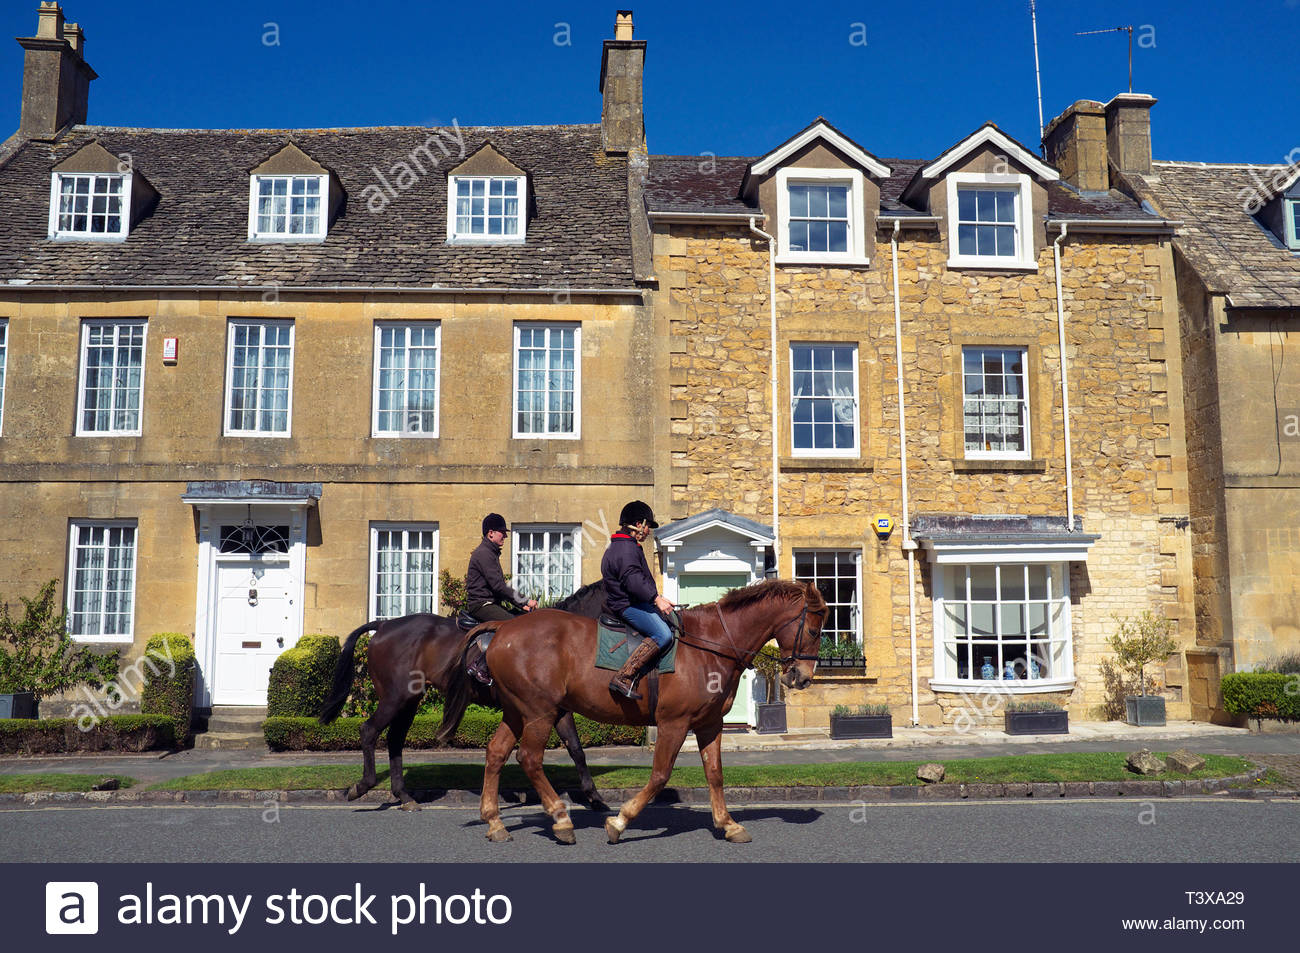 Horse riders trot by in the Cotswold village of Broadway in Worcestershire, UK. Stock Photo